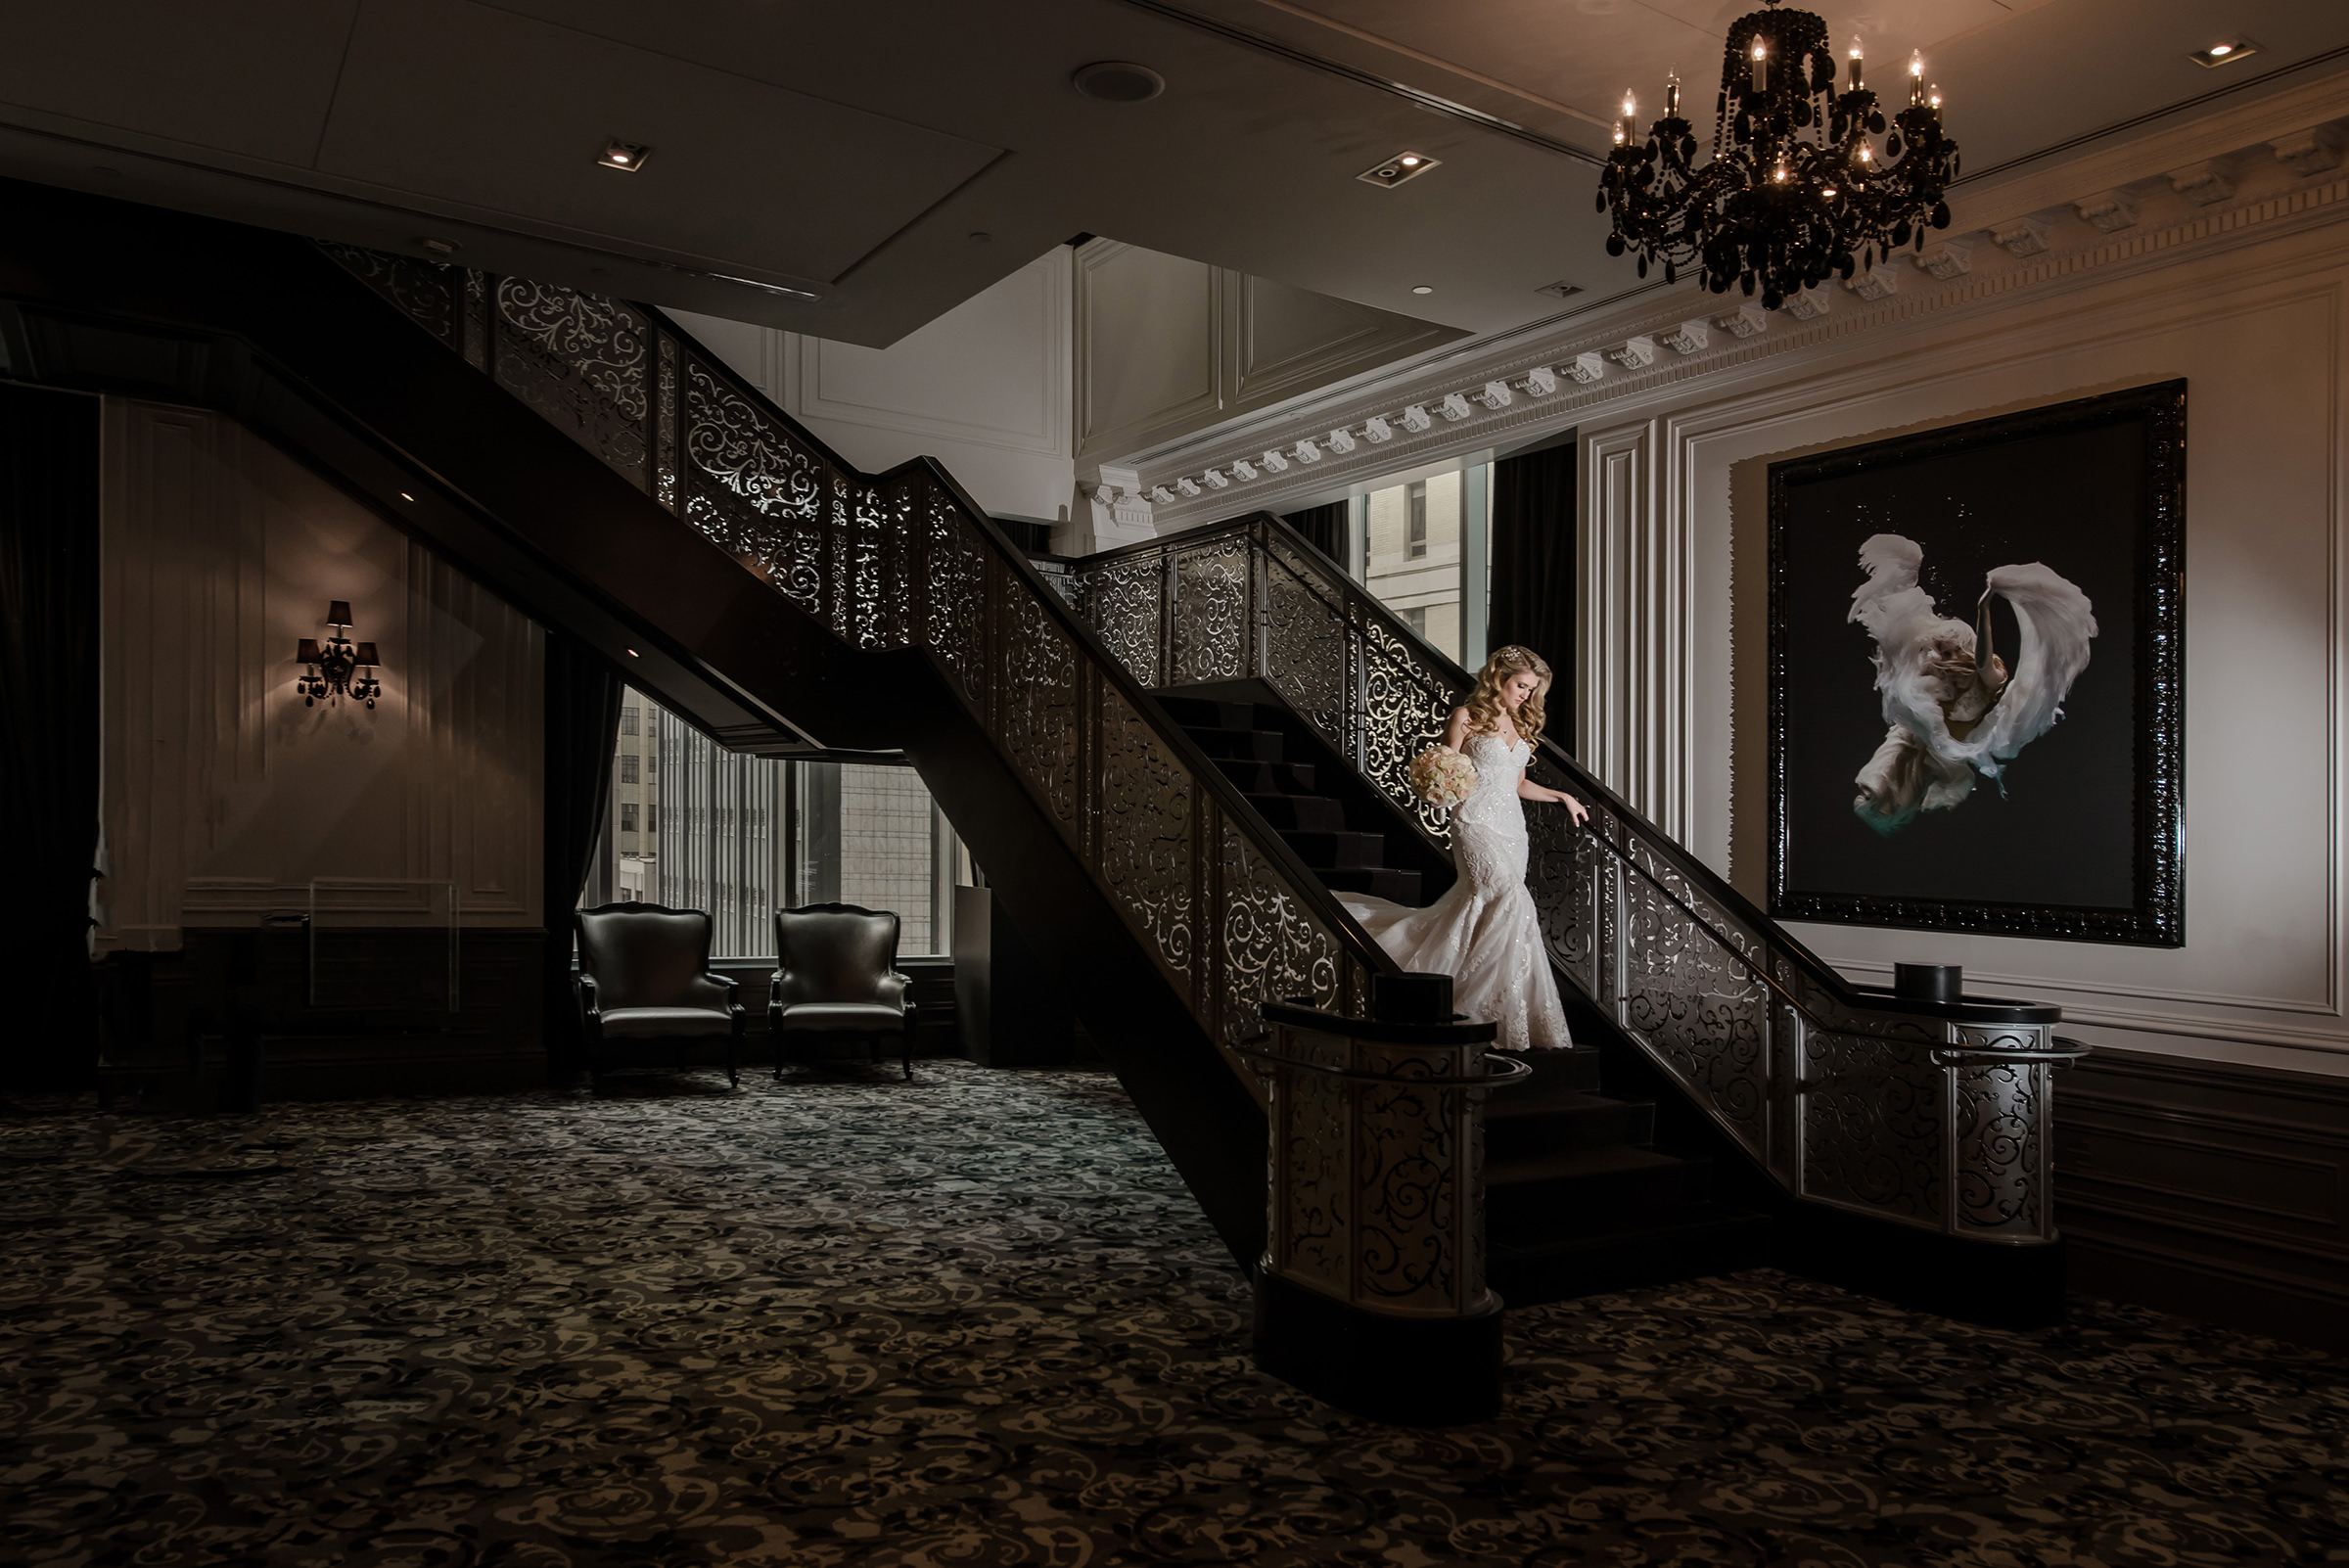 Bride descending ornate staircase - photo by David & Sherry Photography